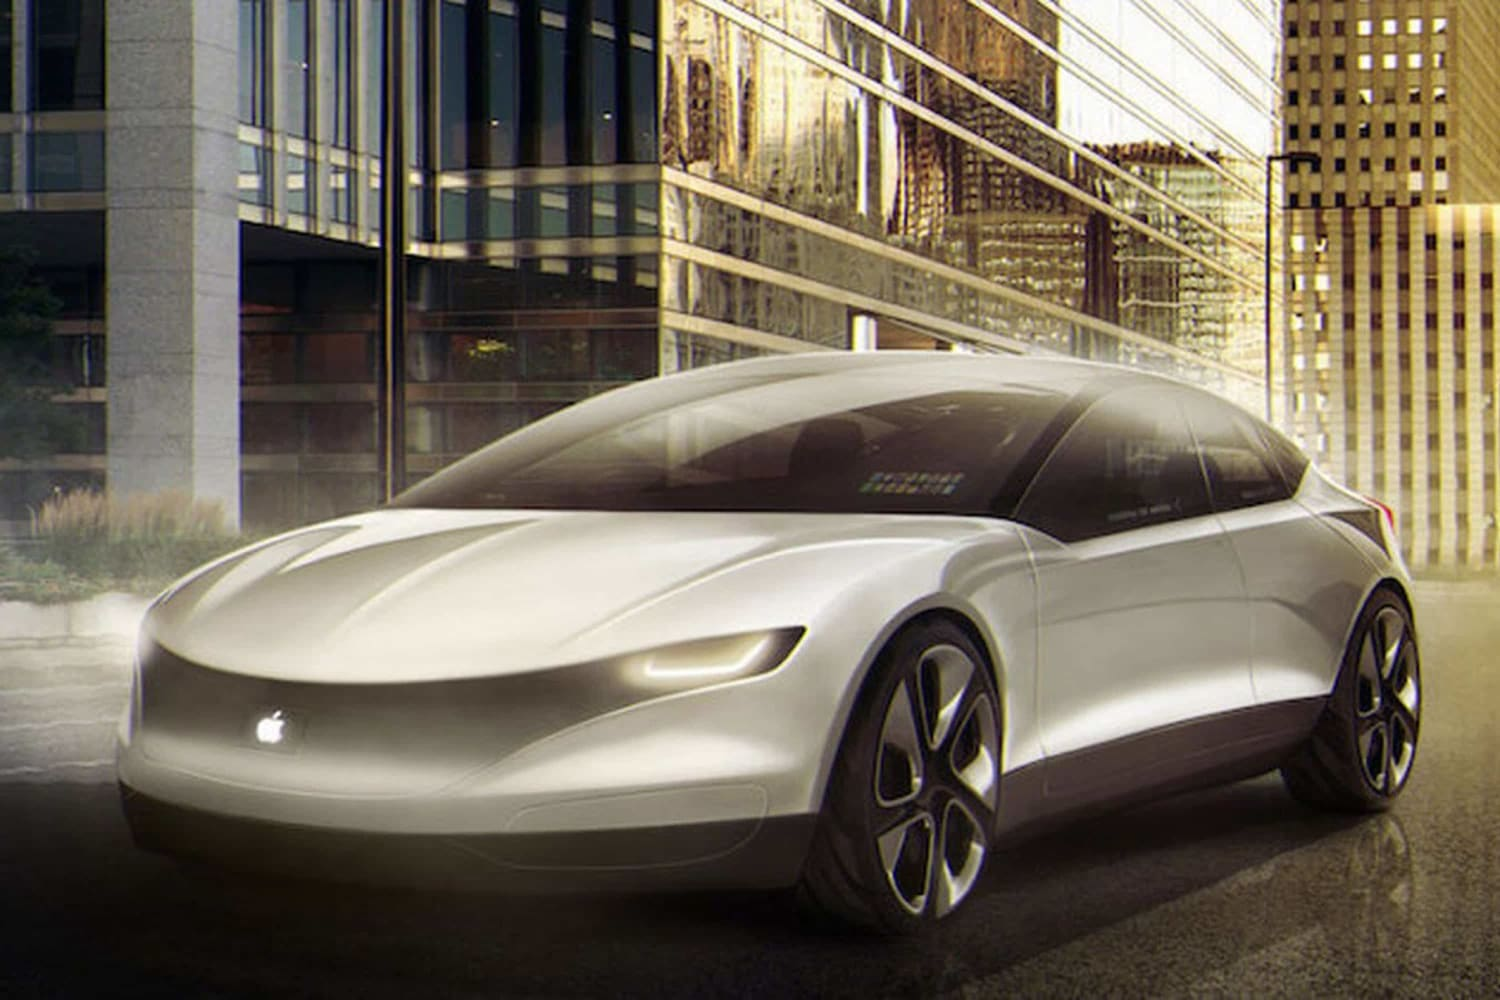 apple-working-with-tsmc-on-self-driving-chip-technology-20201209-1